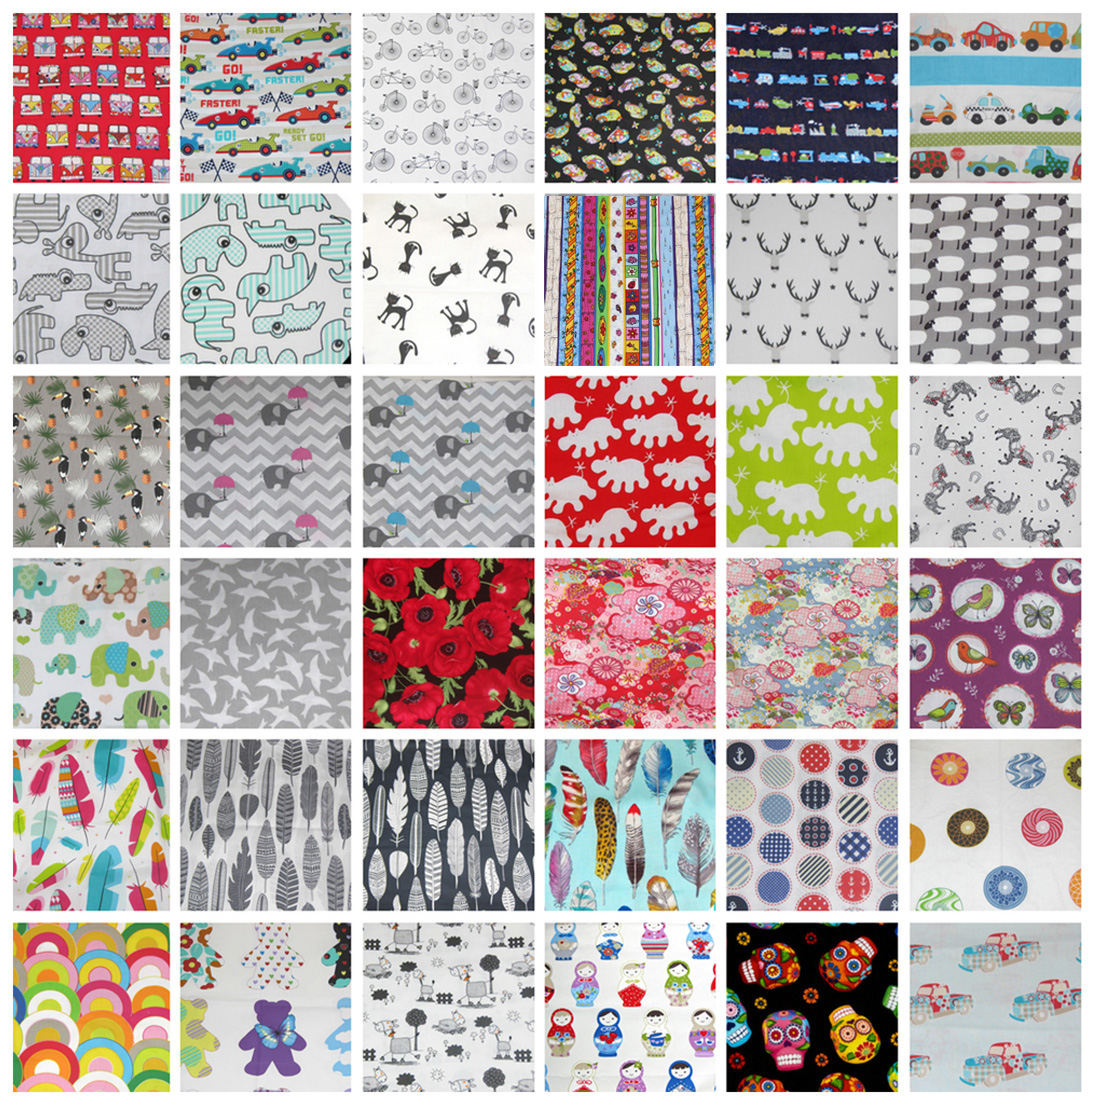 available-fabrics-website-palette-july2017-edited-1.jpg